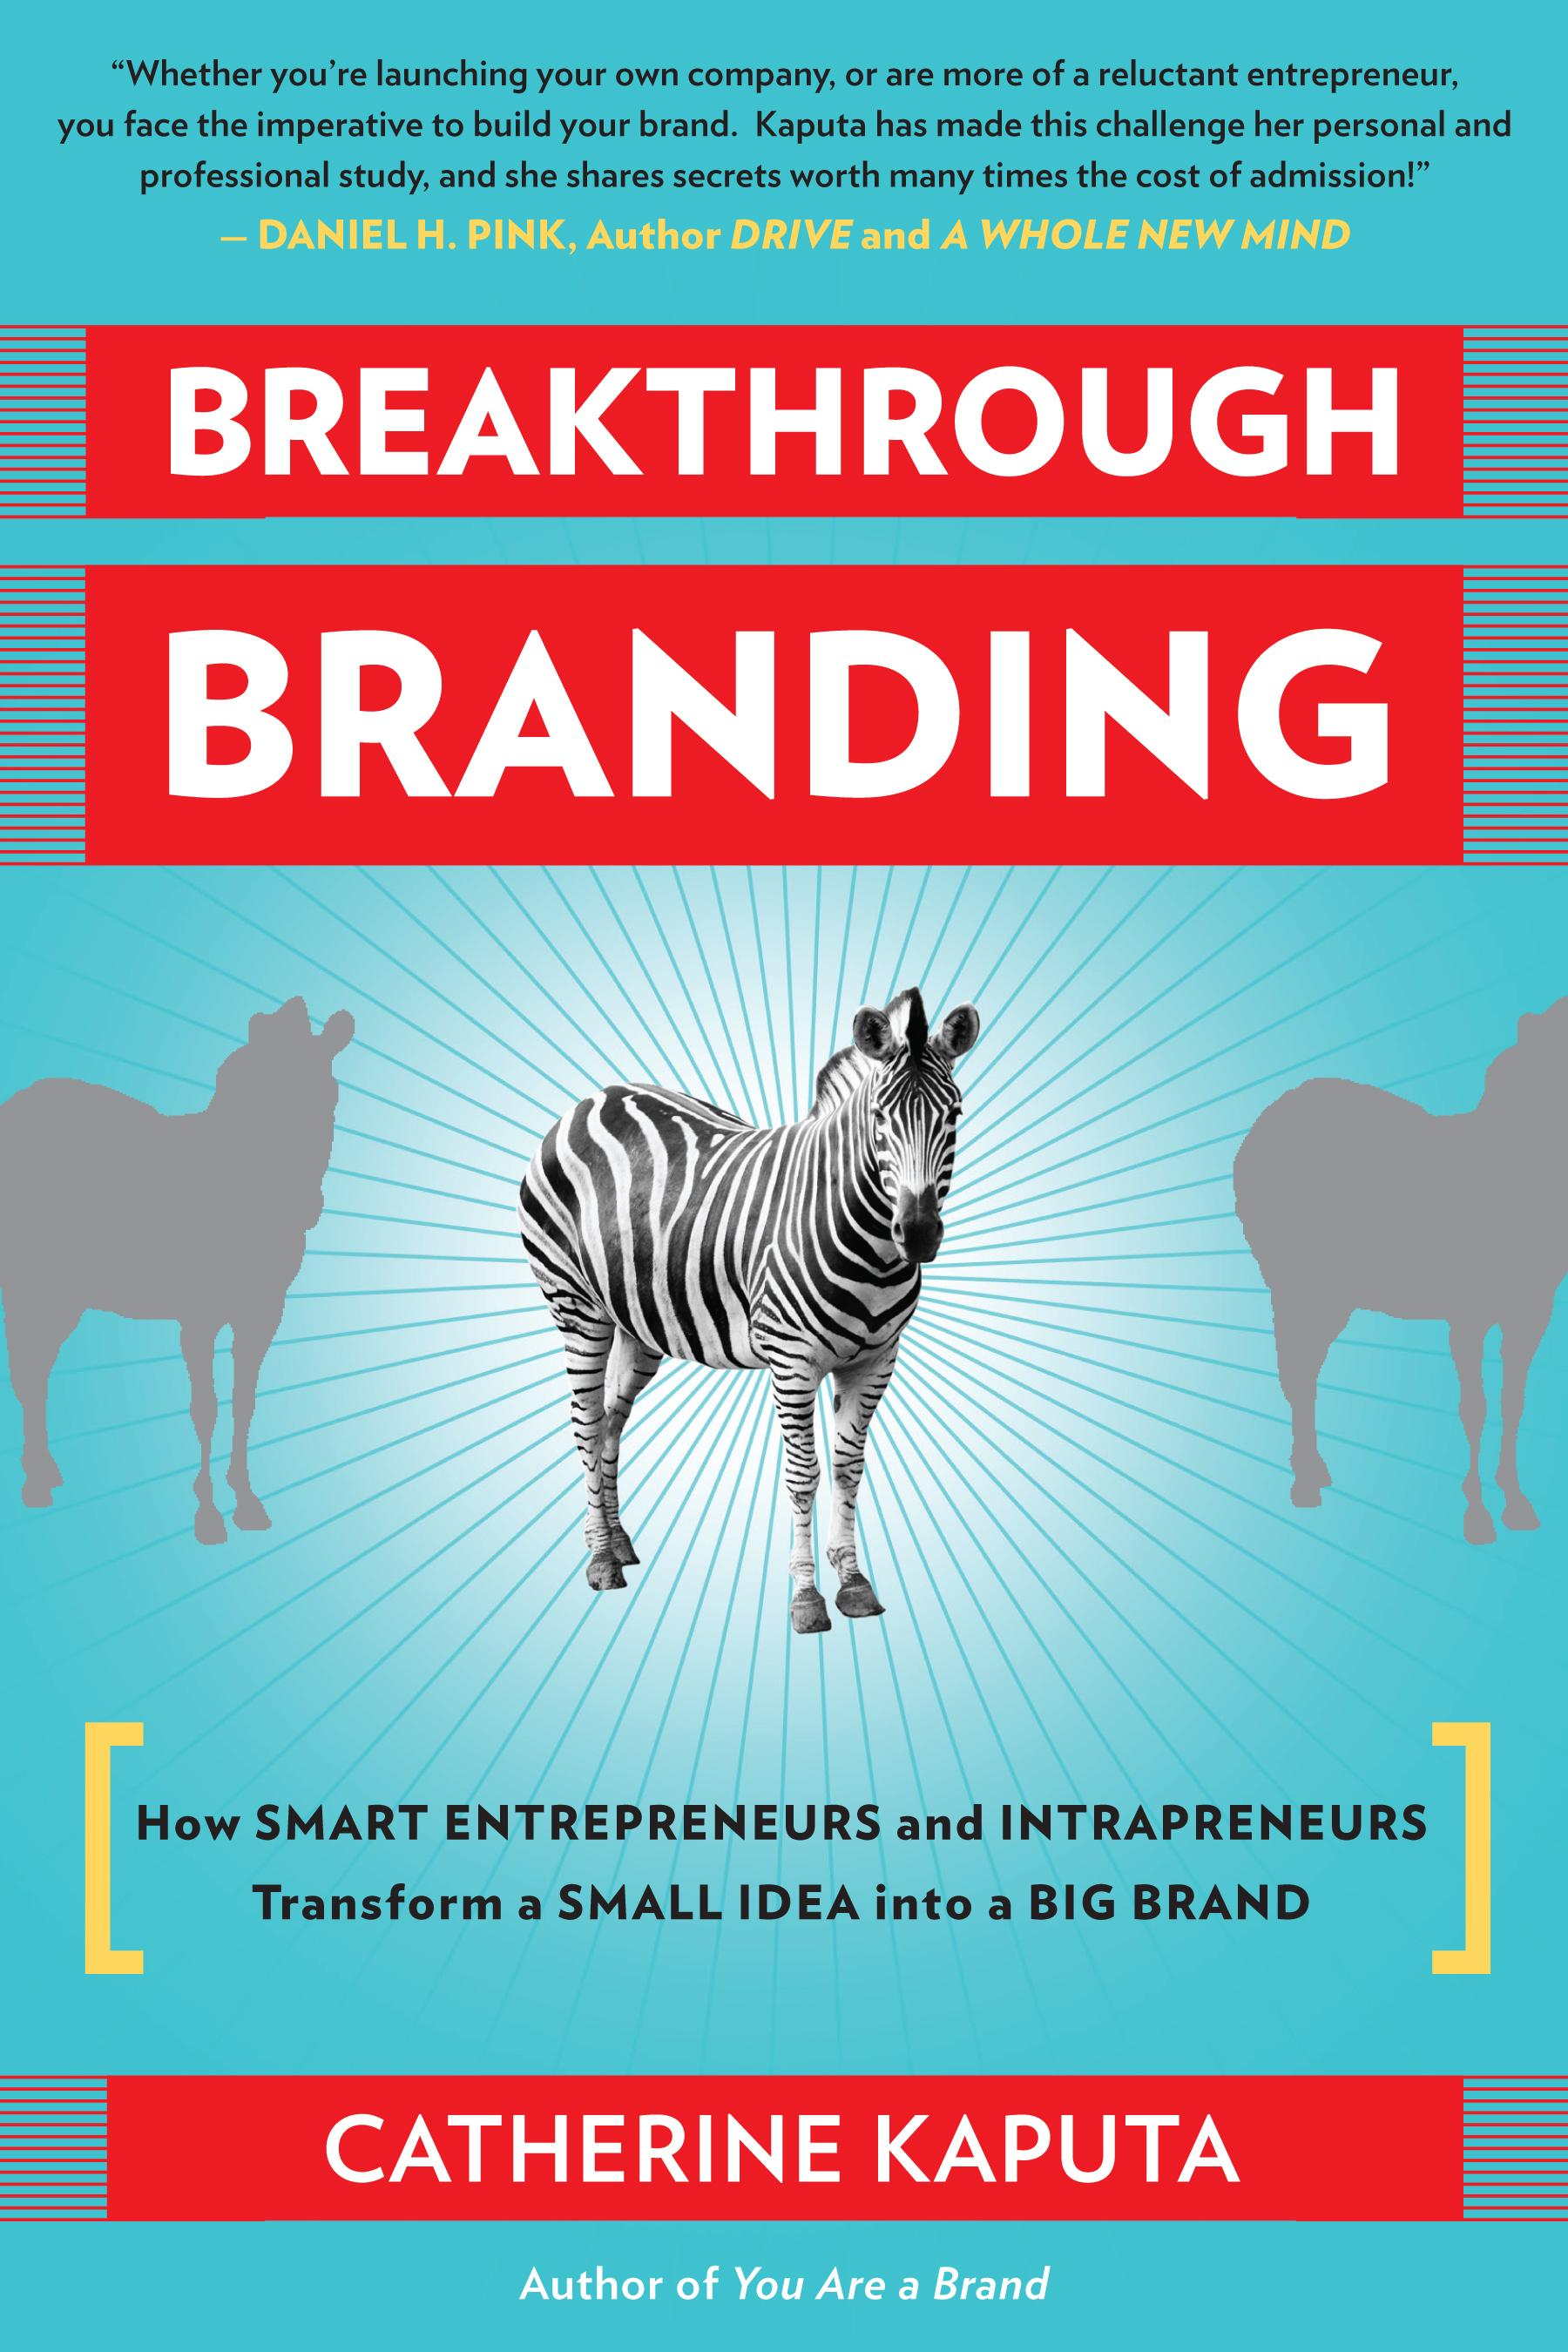 Silver Medal 2012 Book Of The Year Awards Business Category Now With A Downloadable Discussion Guide For Entrepreneur And Marketing Groups